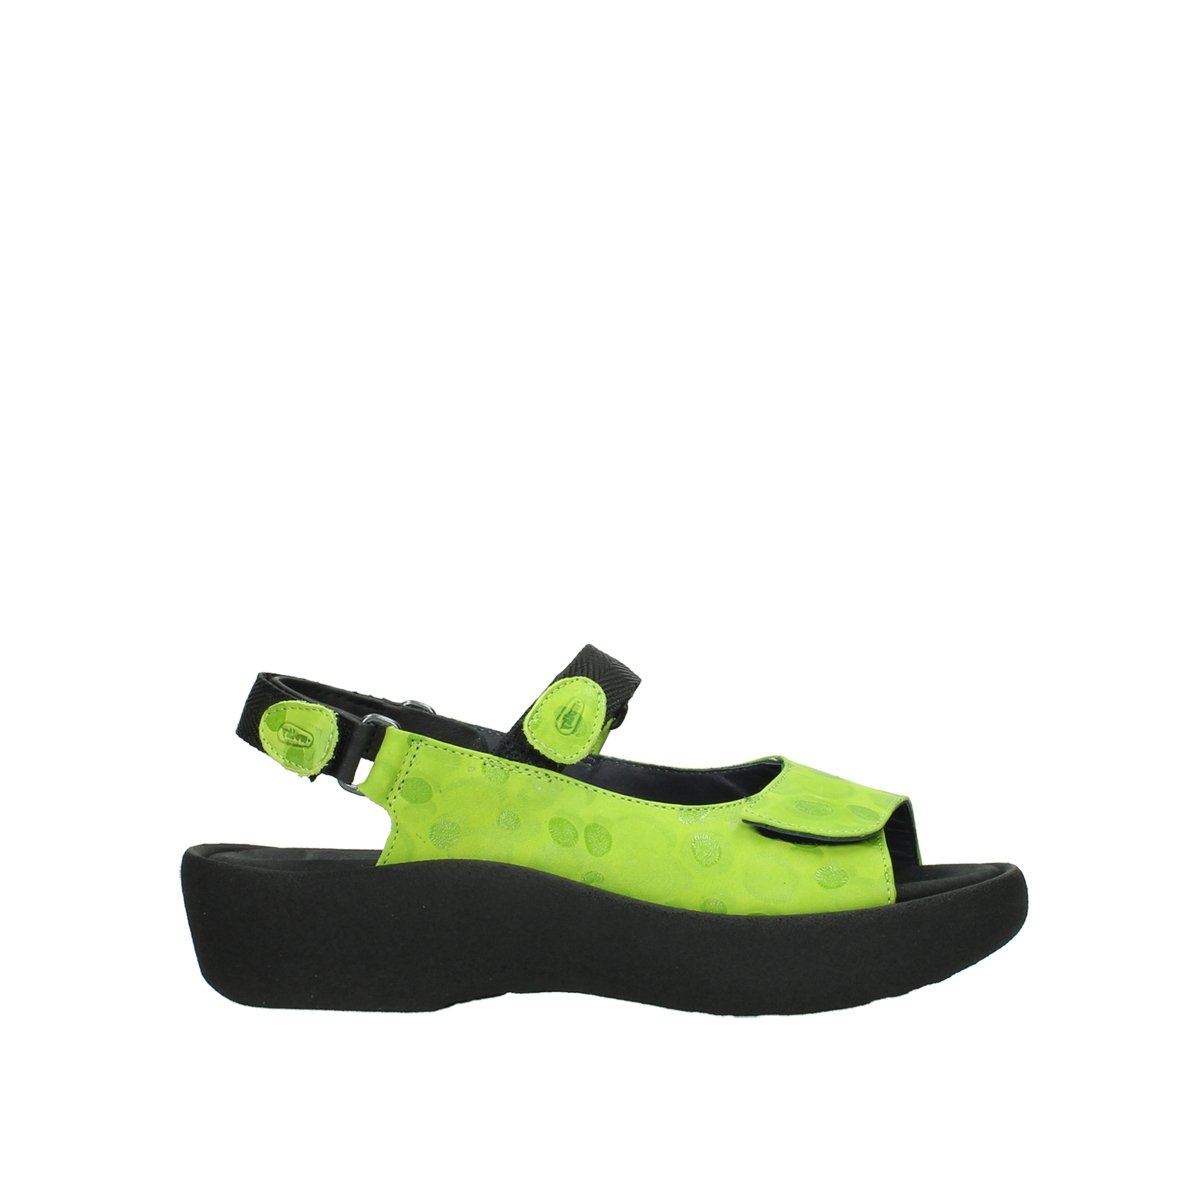 Wolky Comfort Jewel B079MBNTTY 4 B(M) US|12750 Lime Nubuckleather